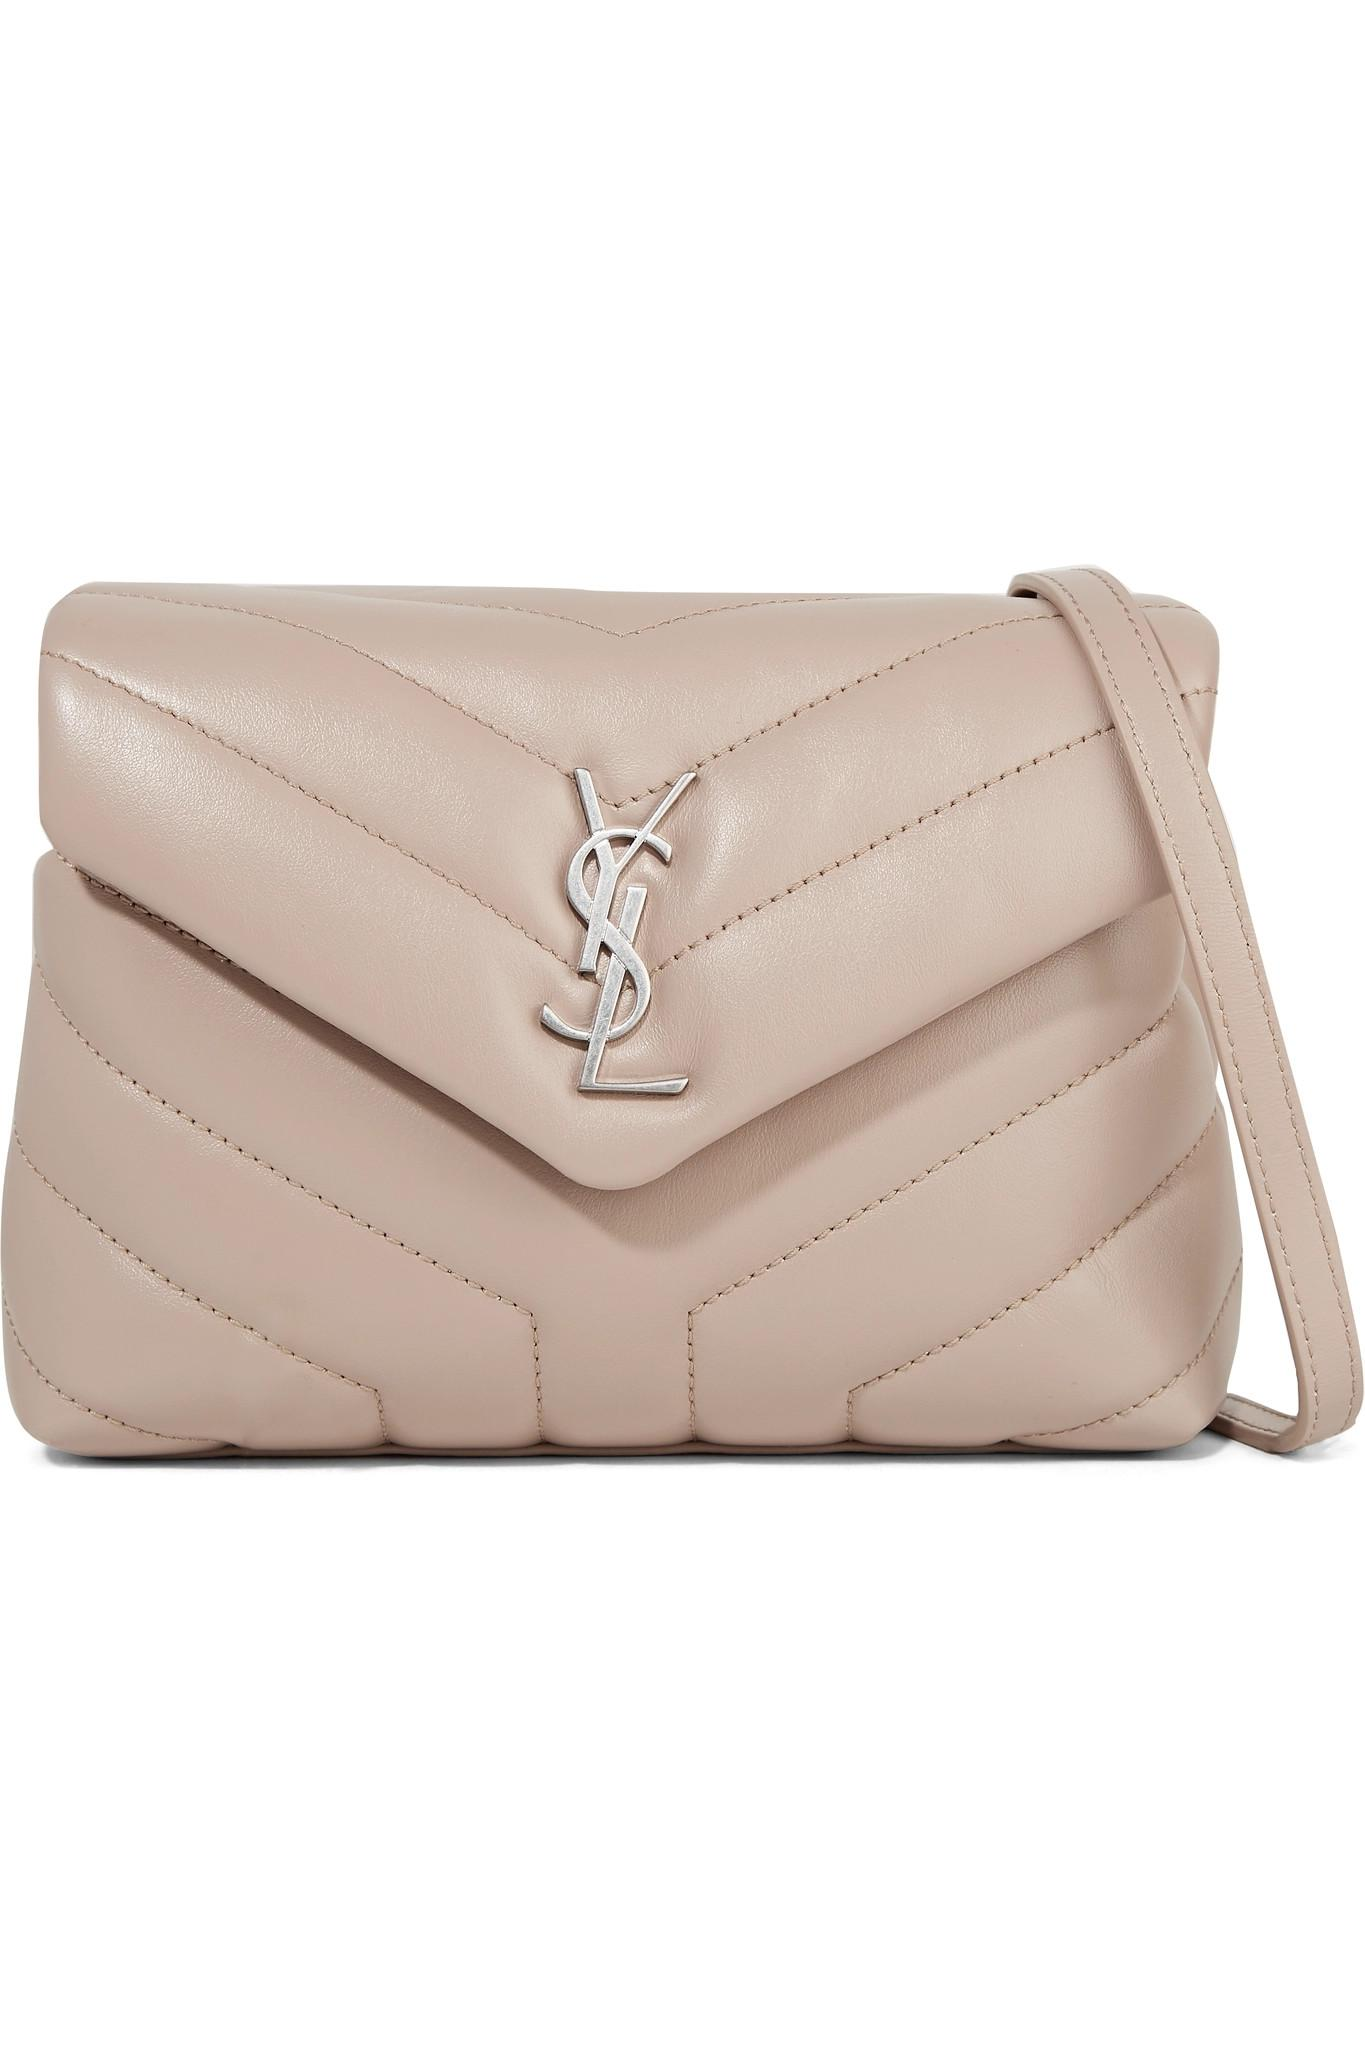 1d07e8cc8edcb Lyst - Saint Laurent Loulou Toy Quilted Leather Shoulder Bag in Natural